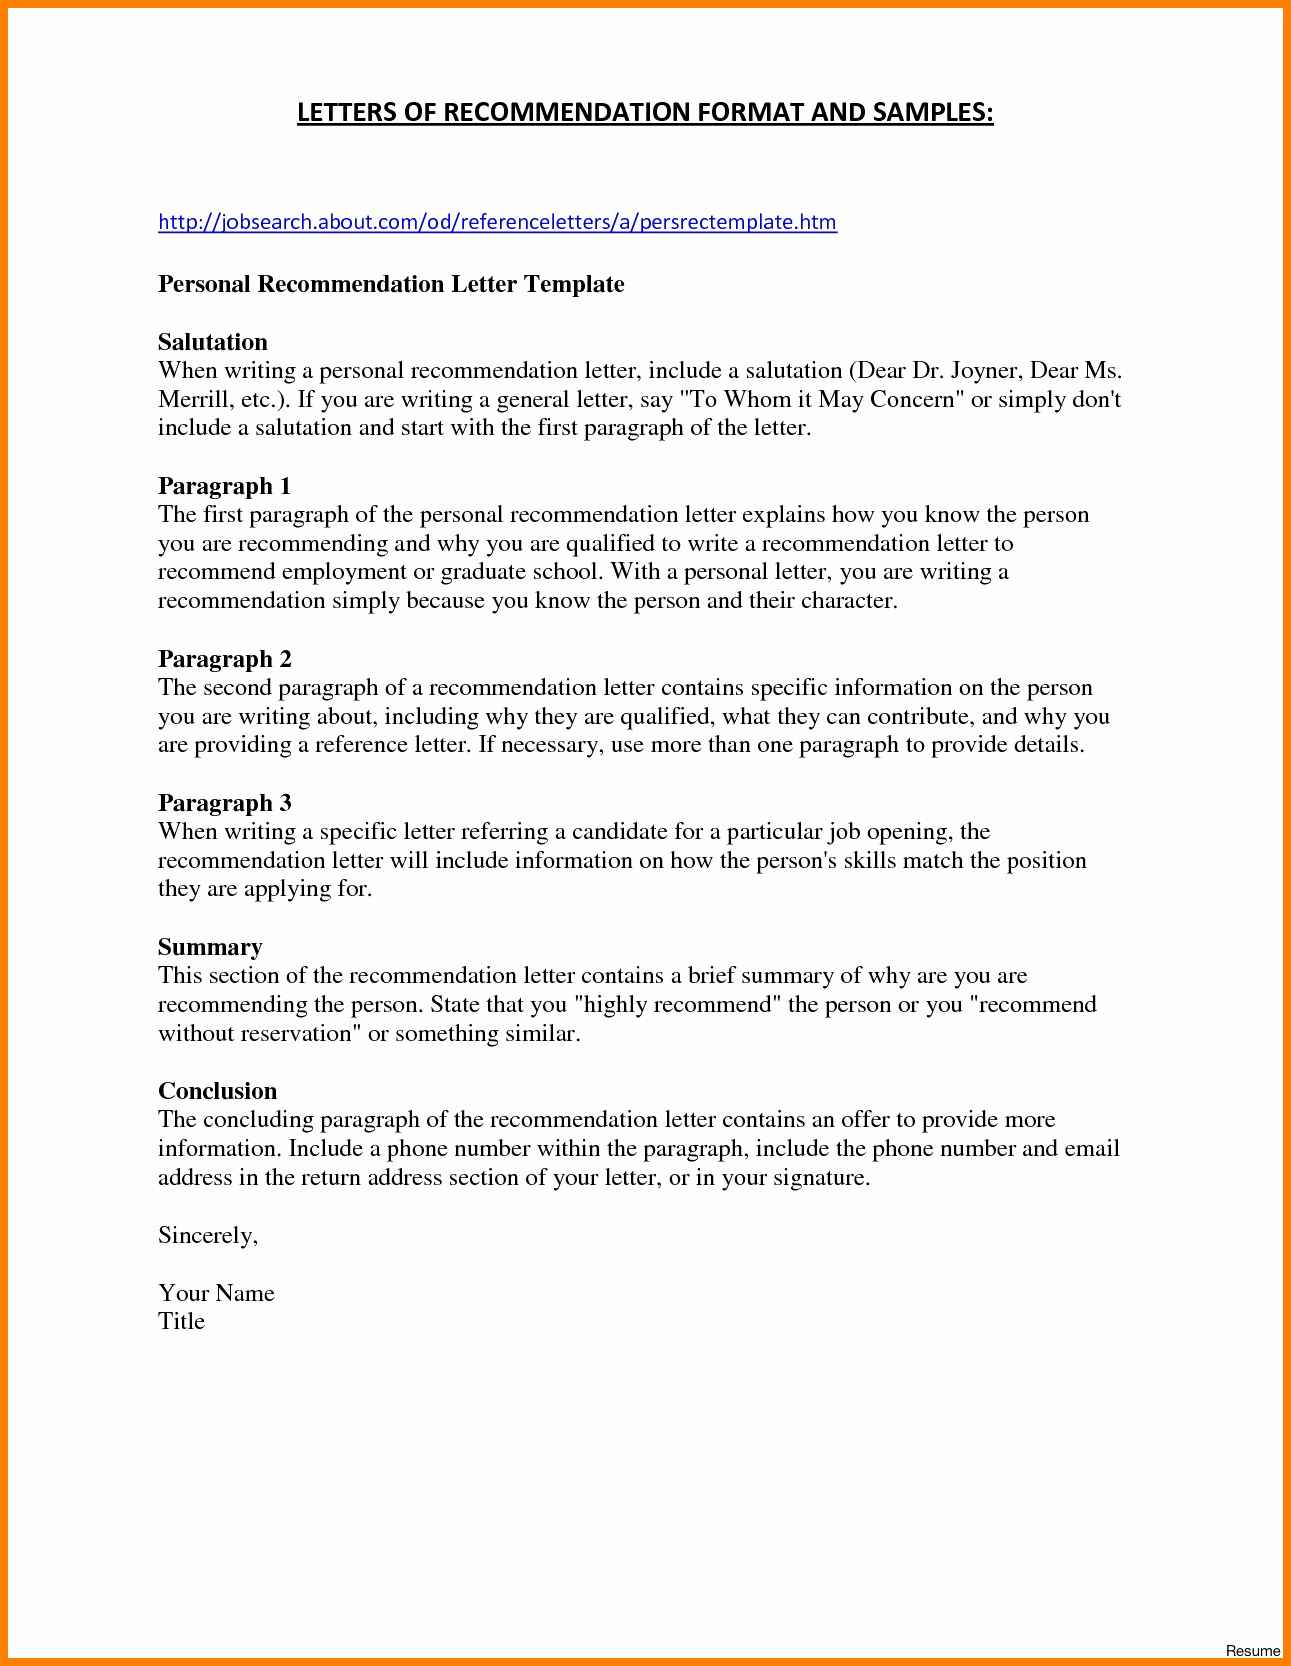 Bad News Letter Template - Sample Good Resume for Job Application Awesome Sample Cover